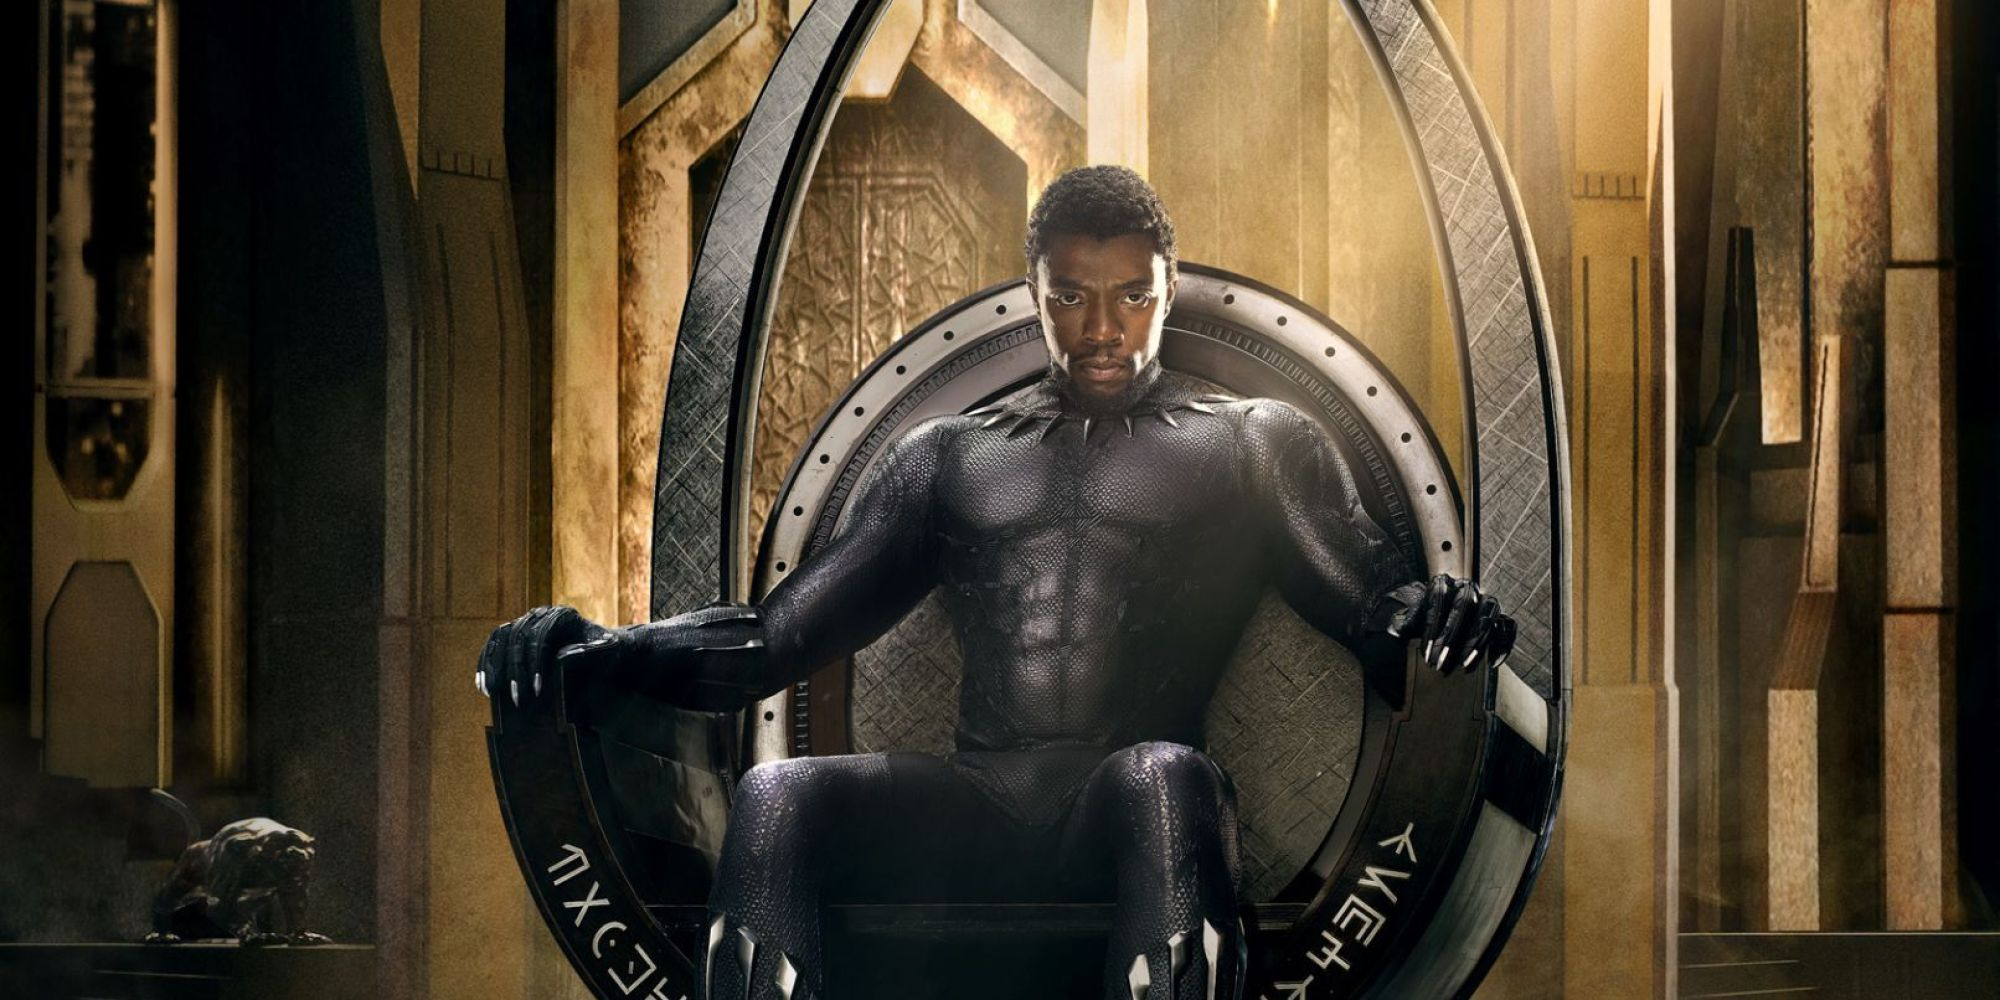 Photo of 5 Things Every Fan Wants To See in Black Panther Movie